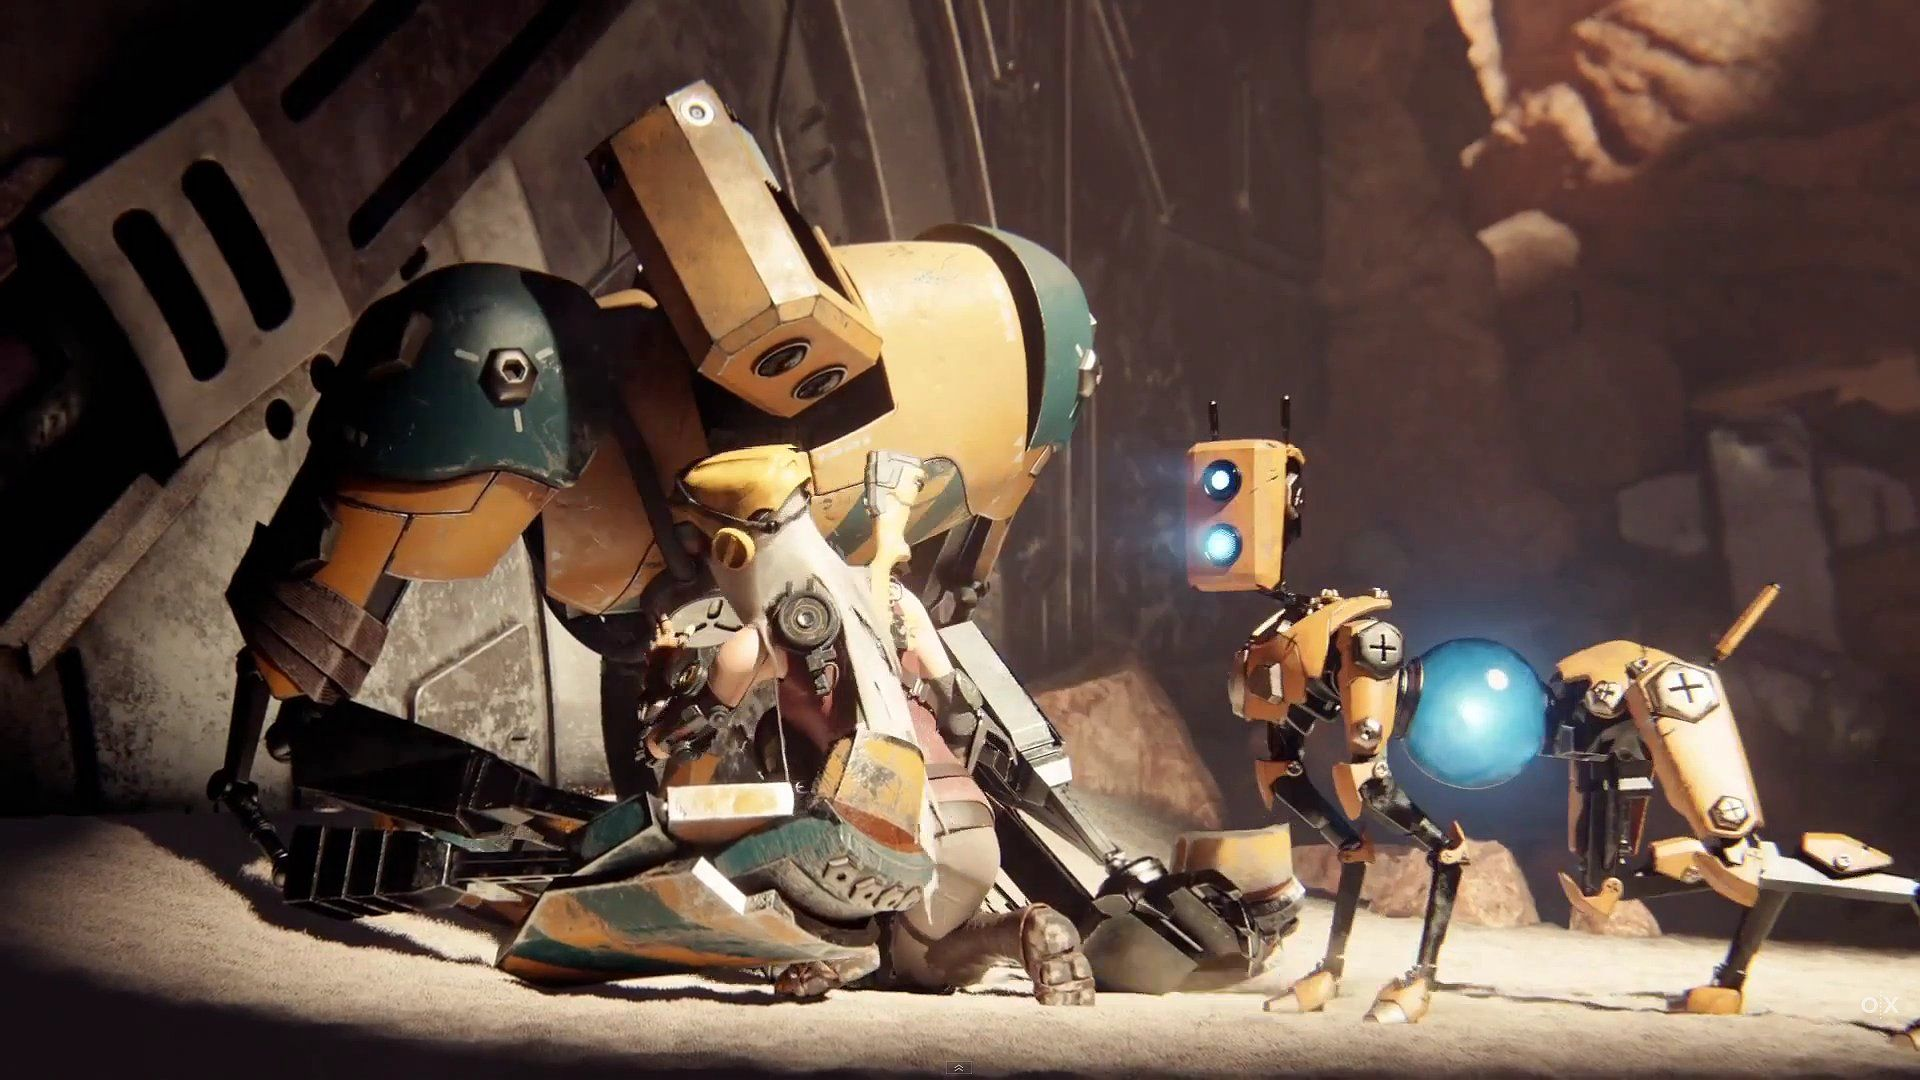 Recore Instagram Photos And Videos 1920 1080 Recore Wallpapers 20 Wallpapers Adorable Wallpapers Hintergrund 20er Tapeten